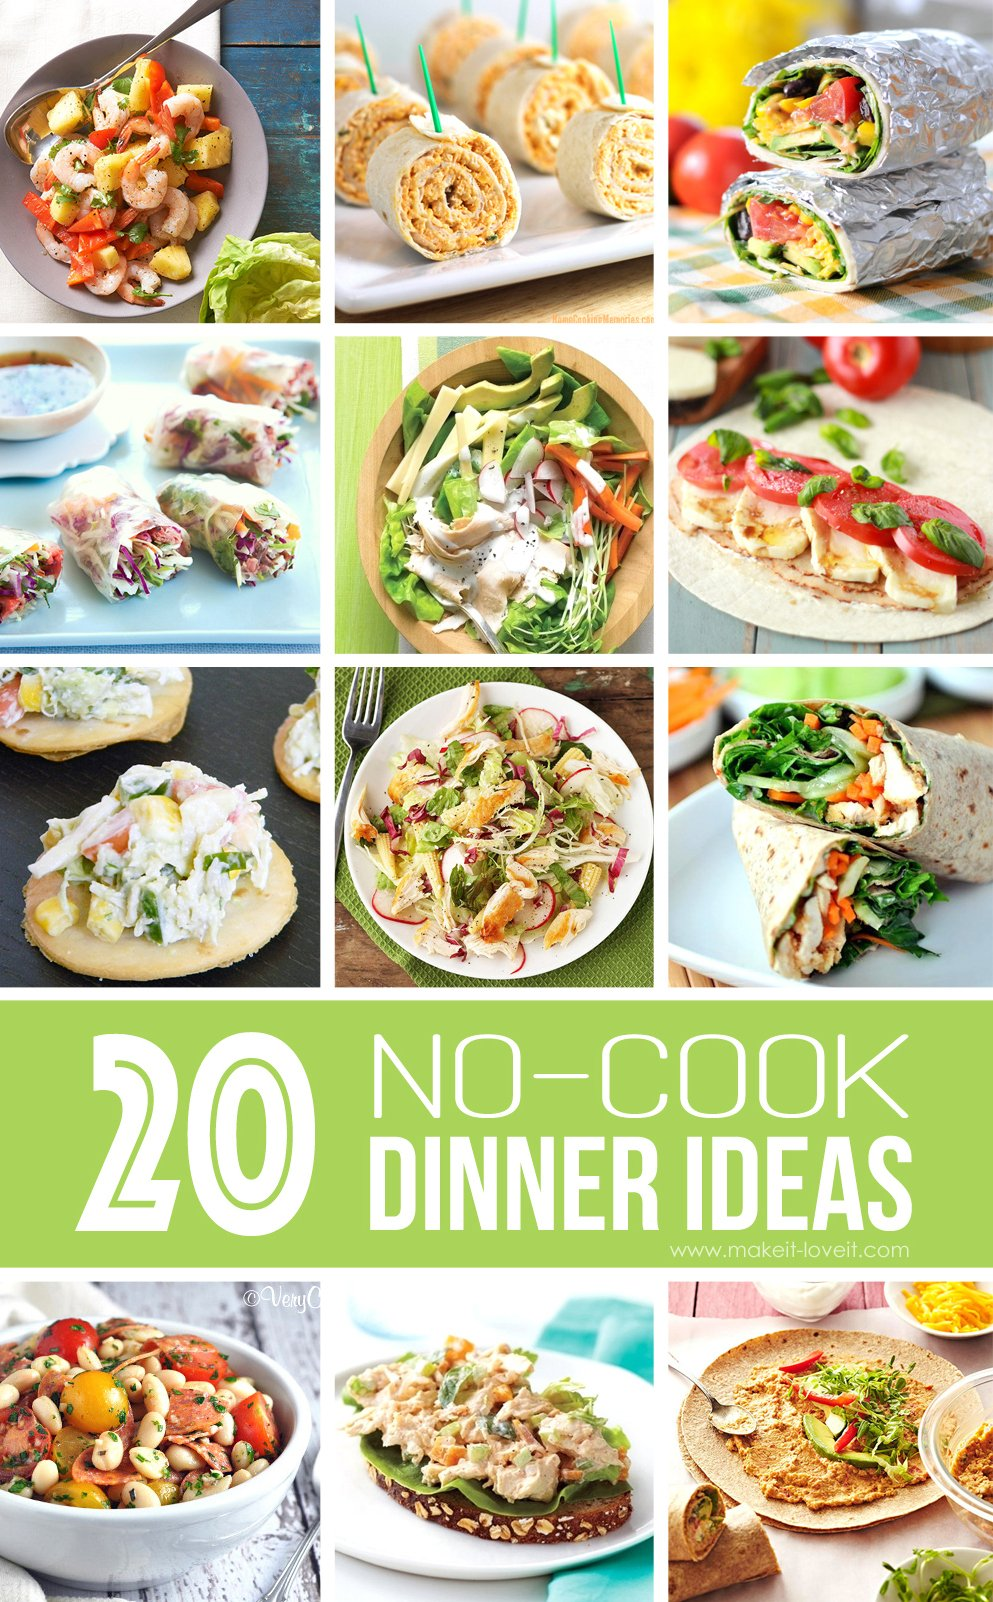 20 NO-COOK Dinner Ideas…great for summer!